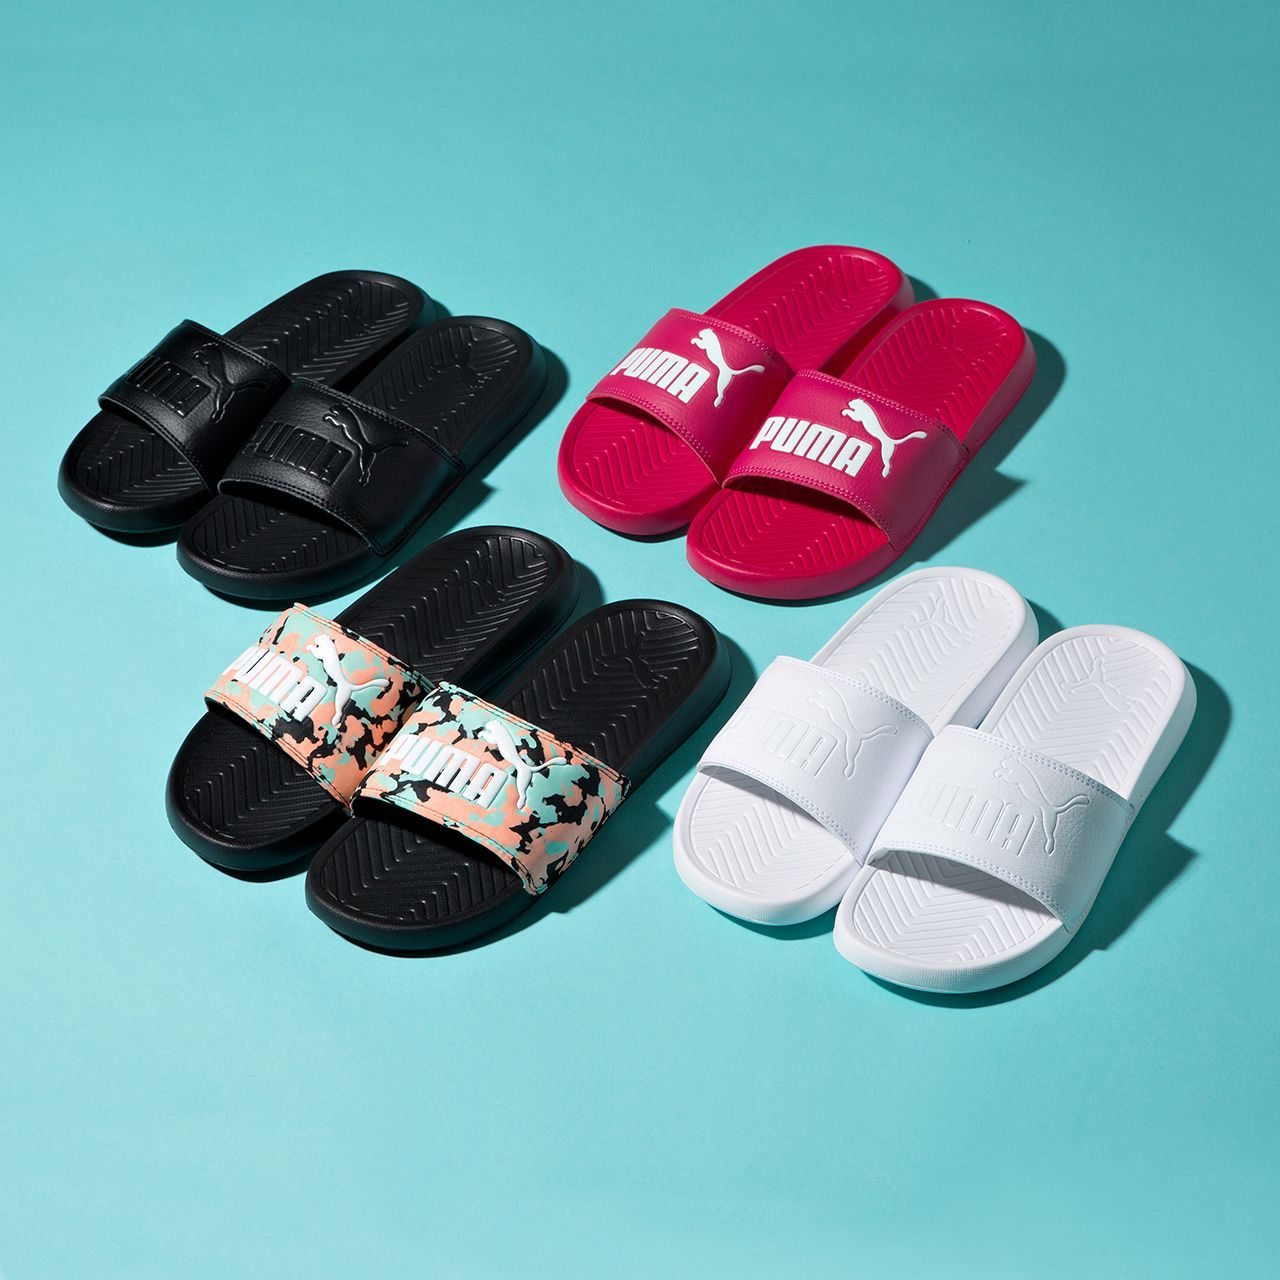 2ba00a2eca4c Prepare for the holiday season with the Puma Womens Popcat Slide Sandal.